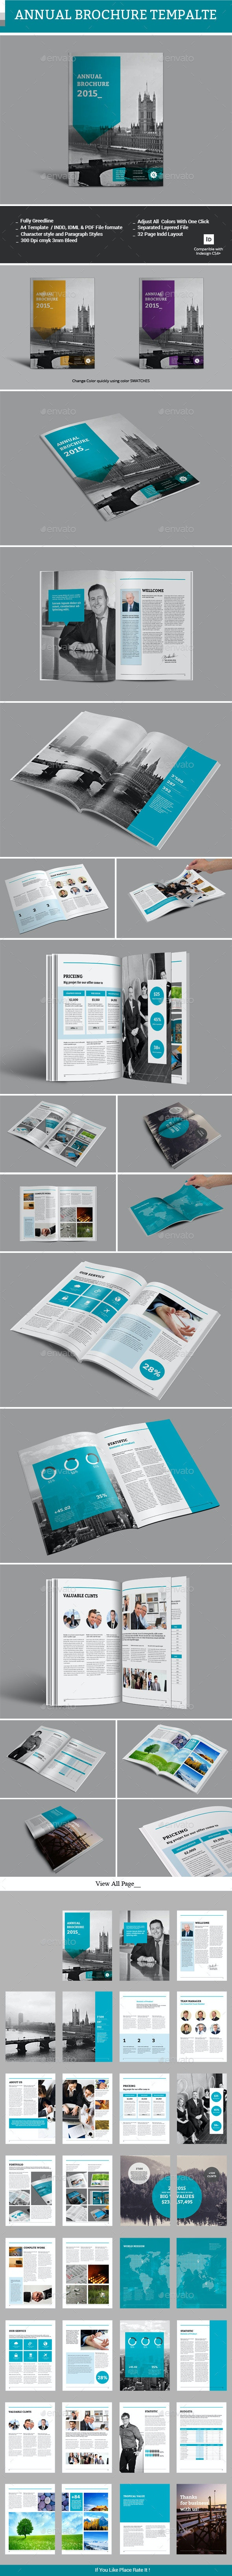 Annual Brochure Template - Informational Brochures